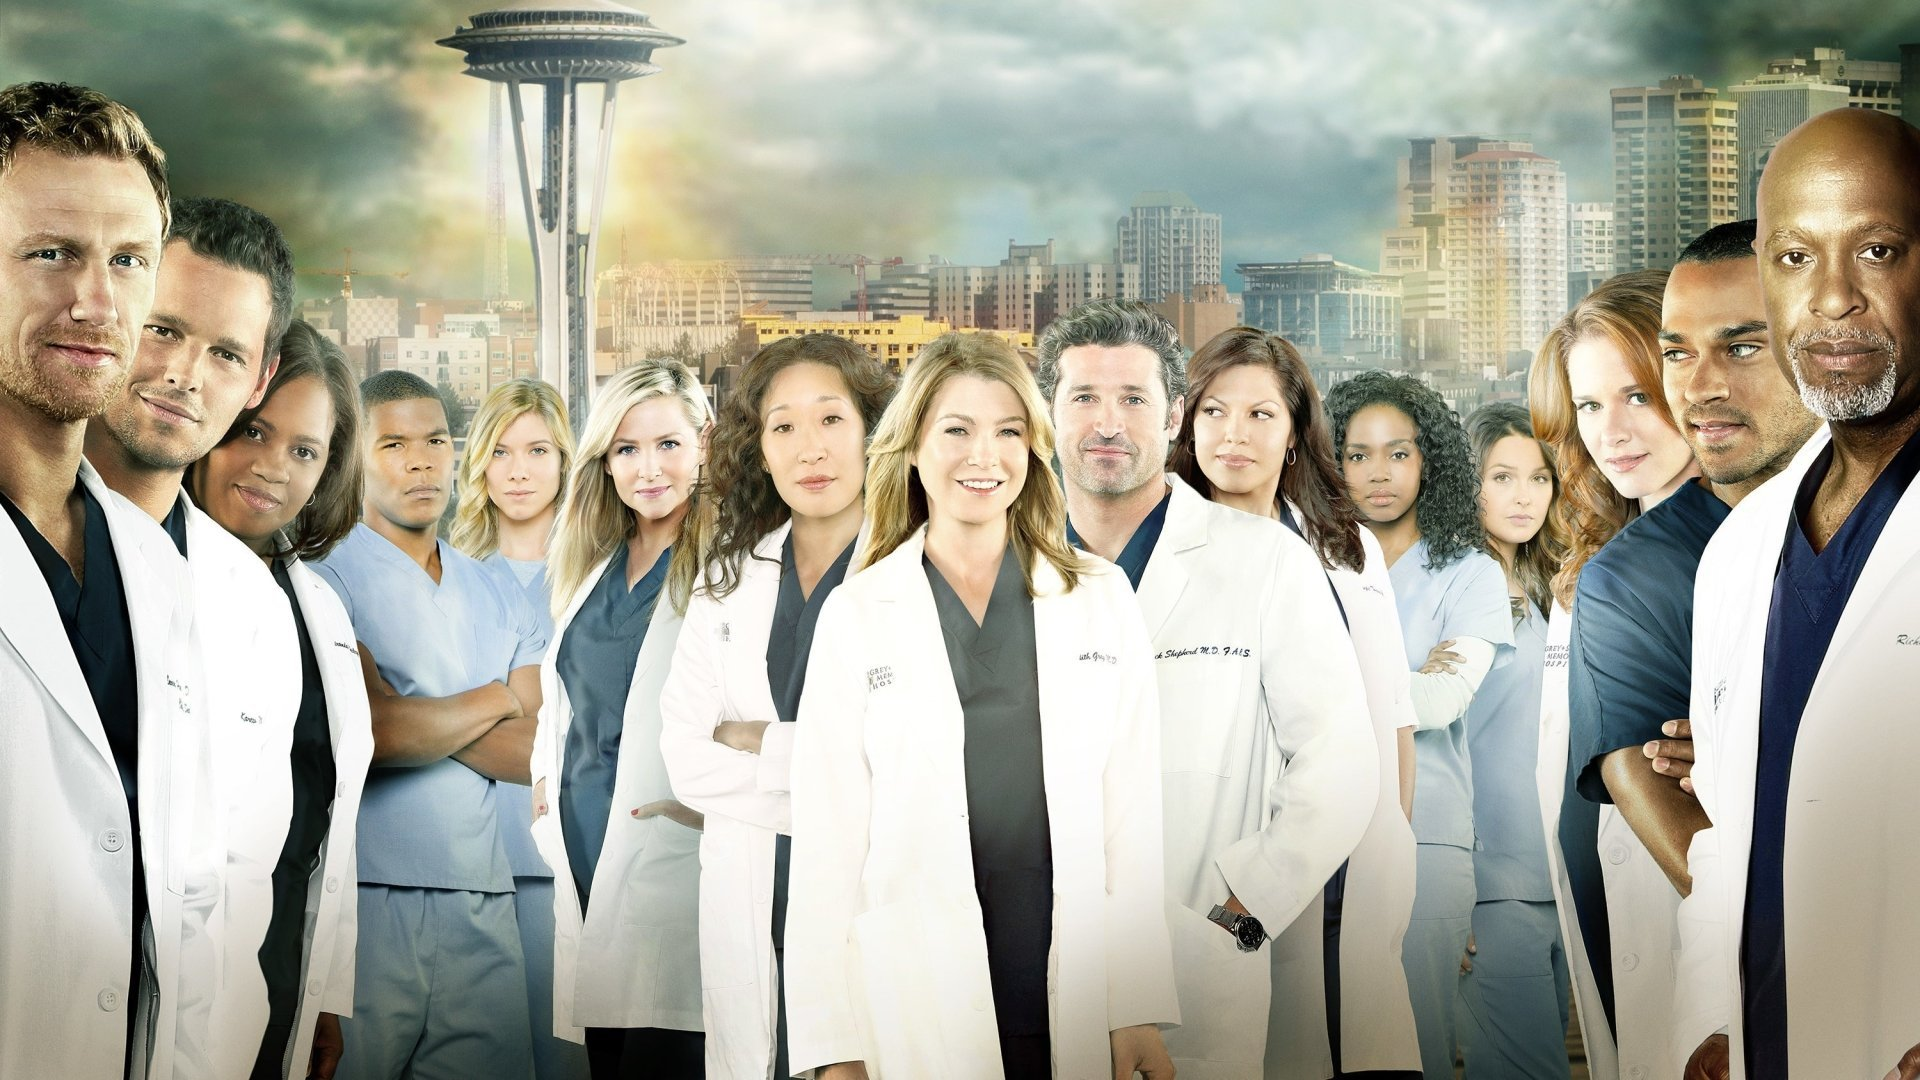 36 Greys Anatomy HD Wallpapers Background Images 1920x1080